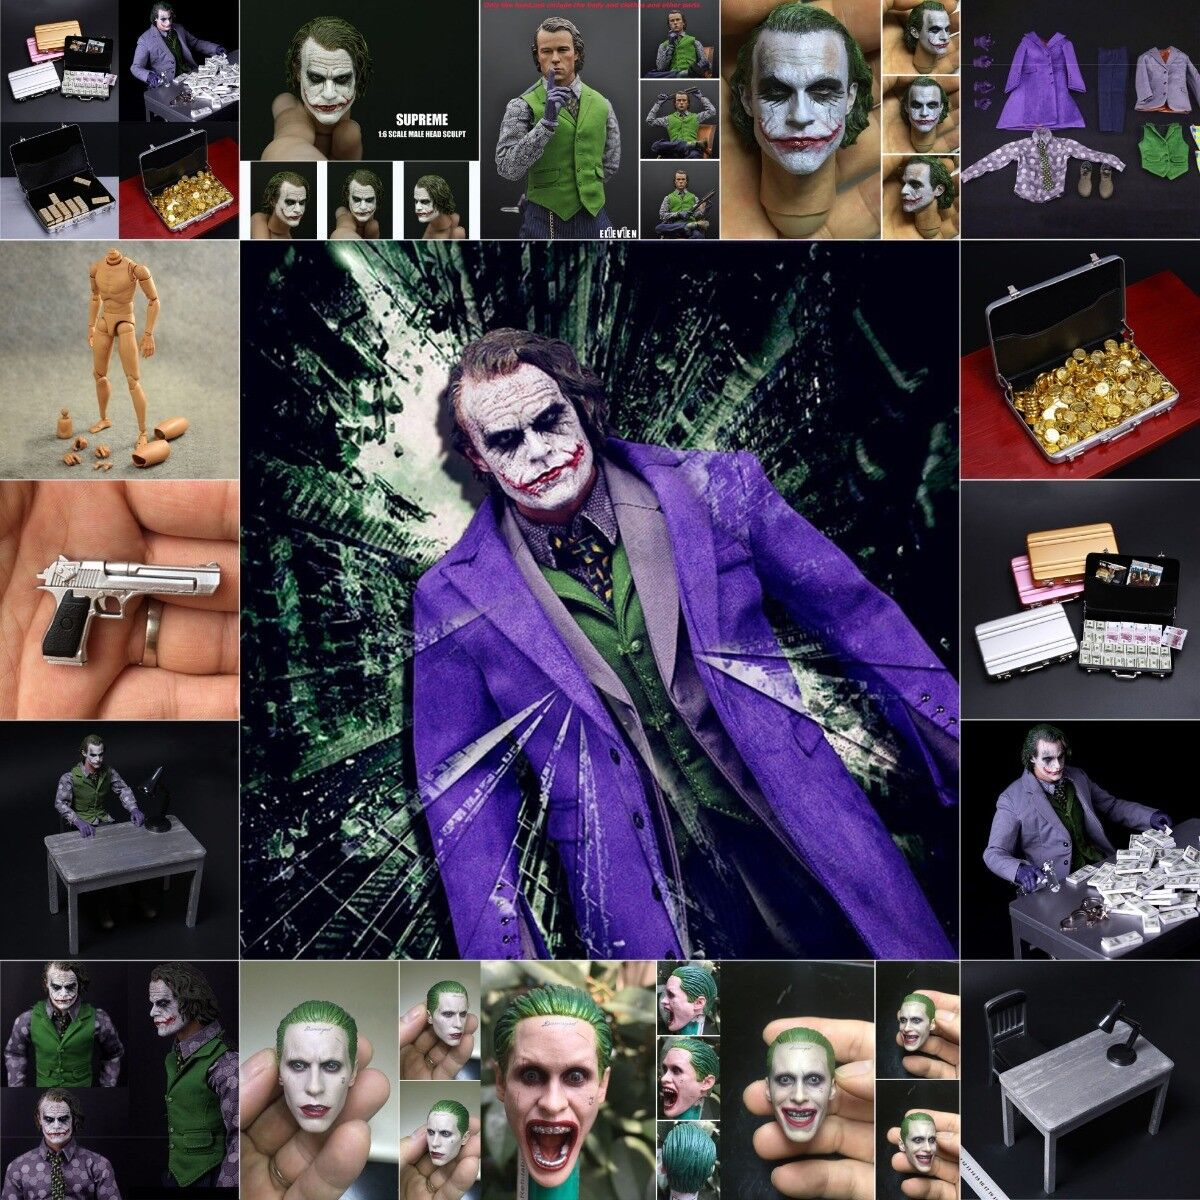 1 6 Scale Batman Joker Clothing and Accessories Set Narrow Shoulder Body Figure